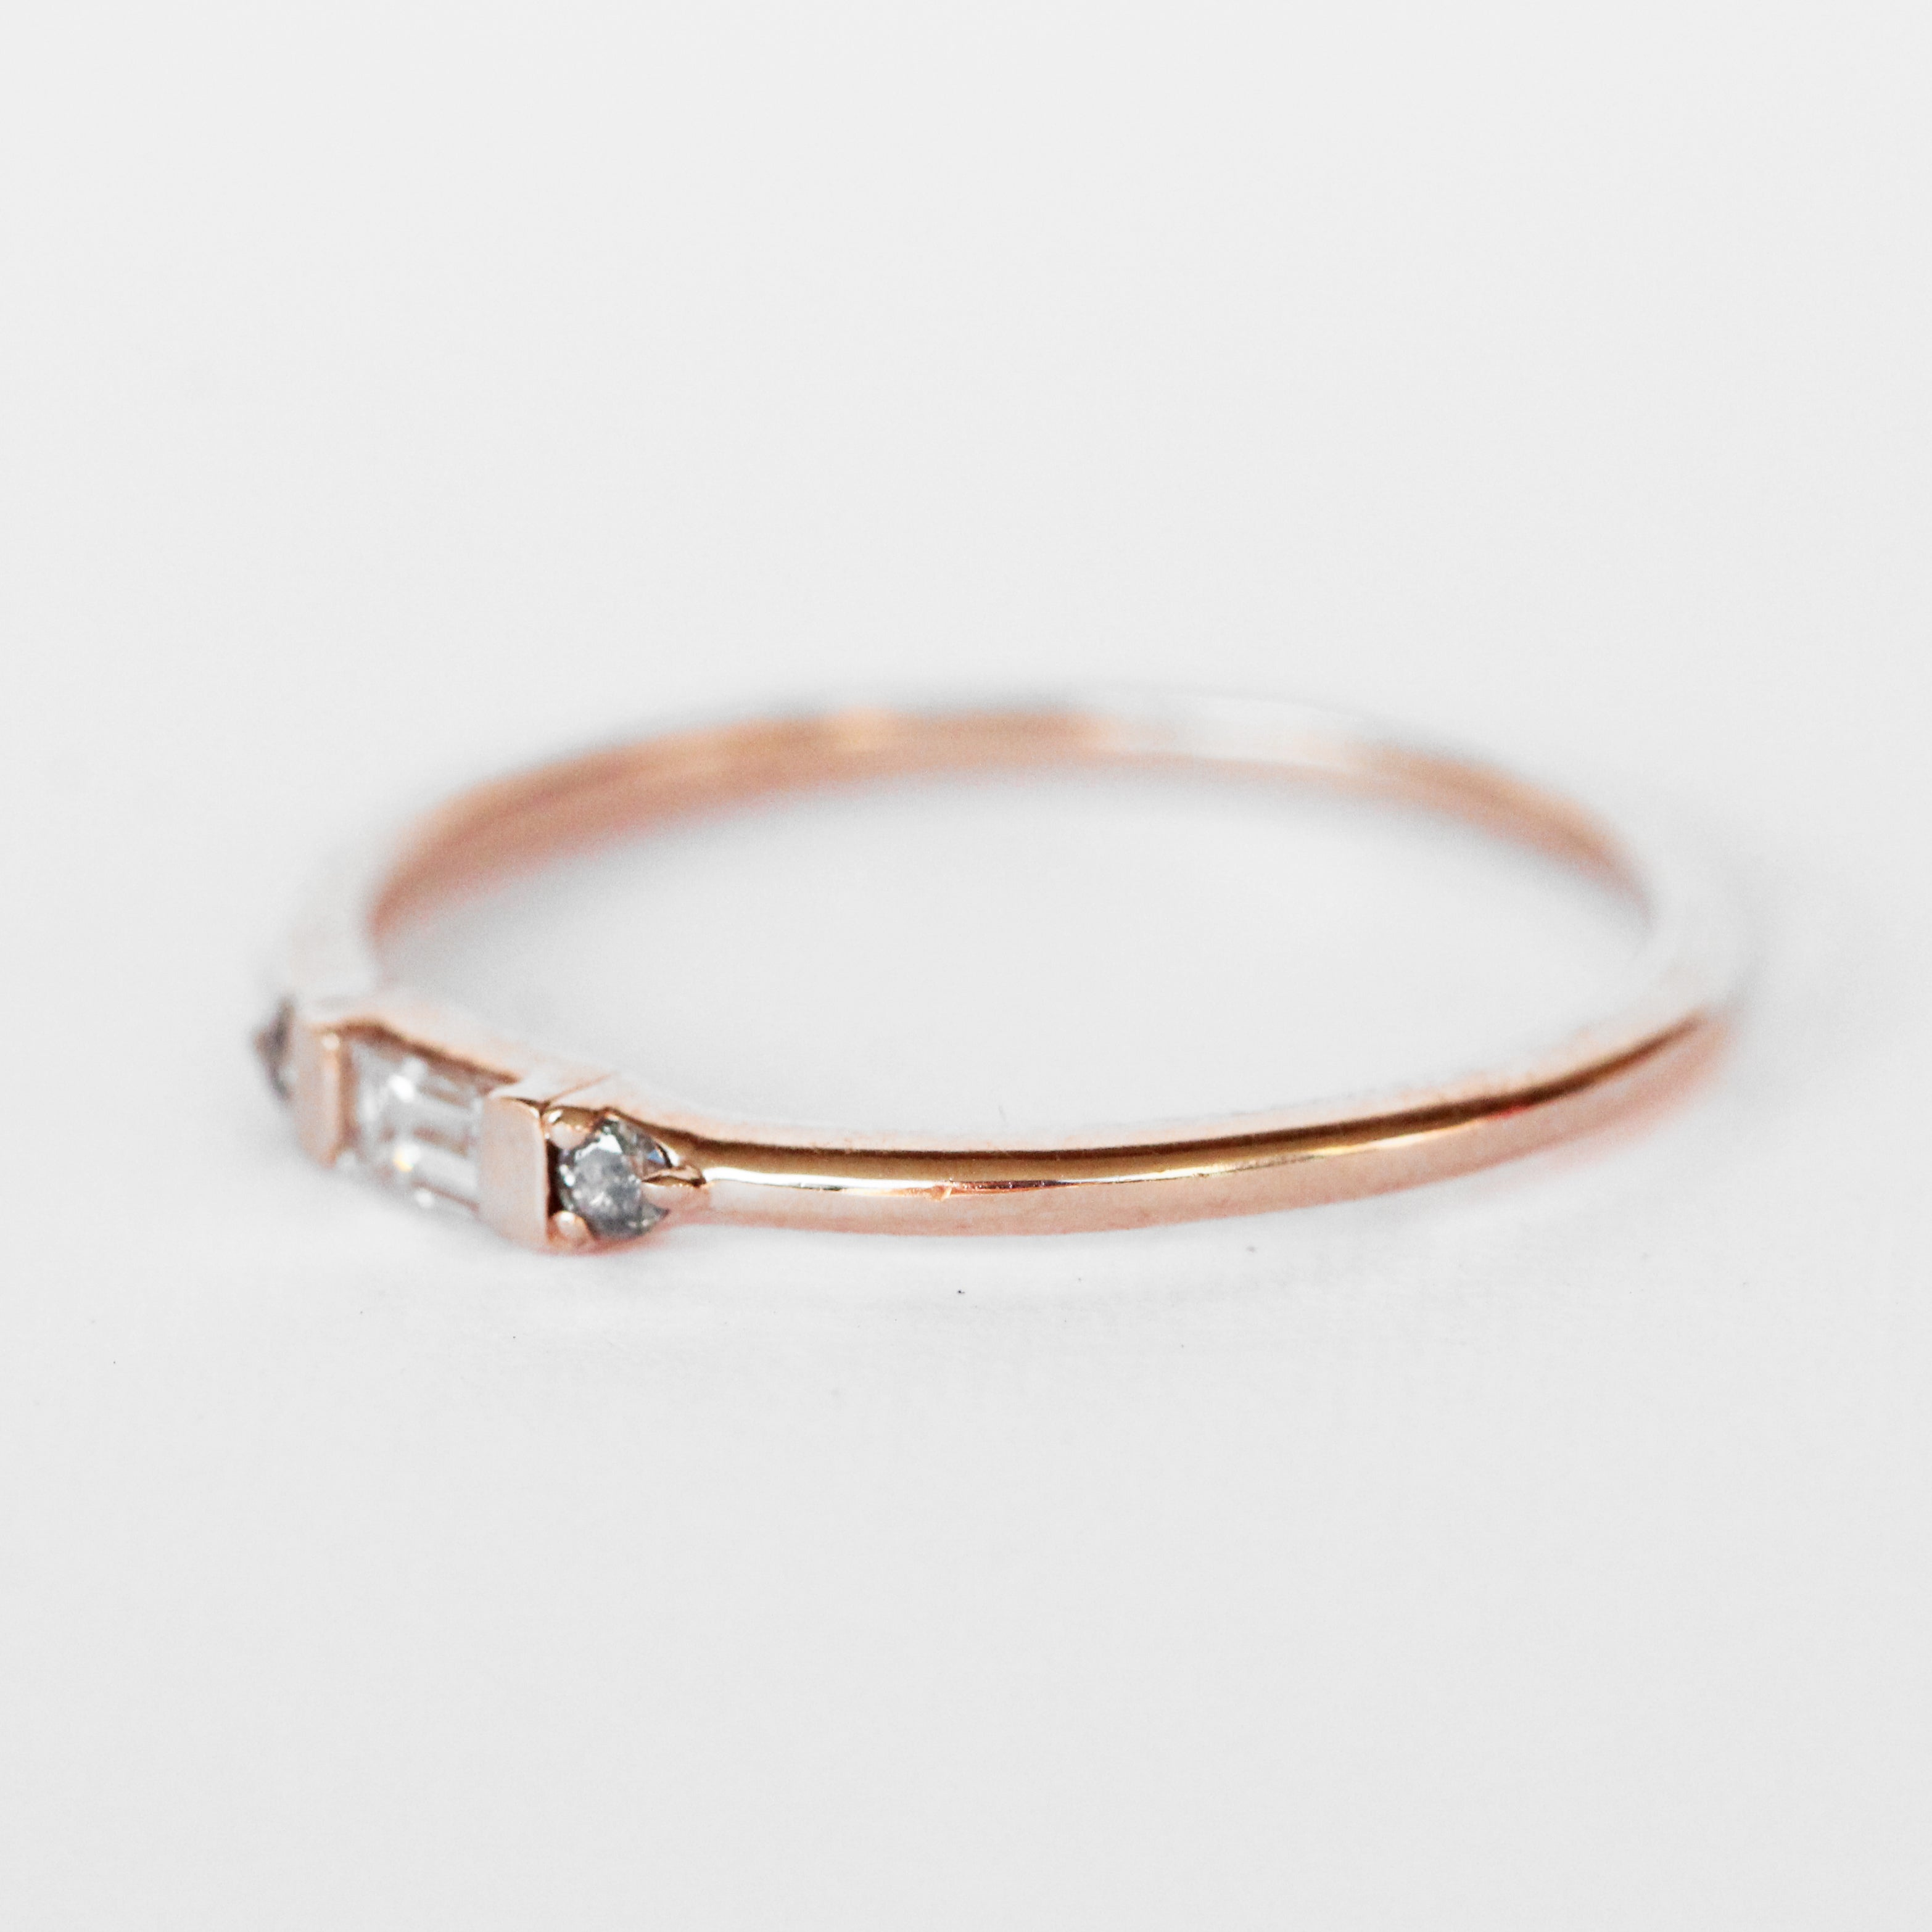 Phoebe Minimal Baguette + Round Diamond Ring - Stackable Band in Your Choice of 14k Gold - Celestial Diamonds ® by Midwinter Co.